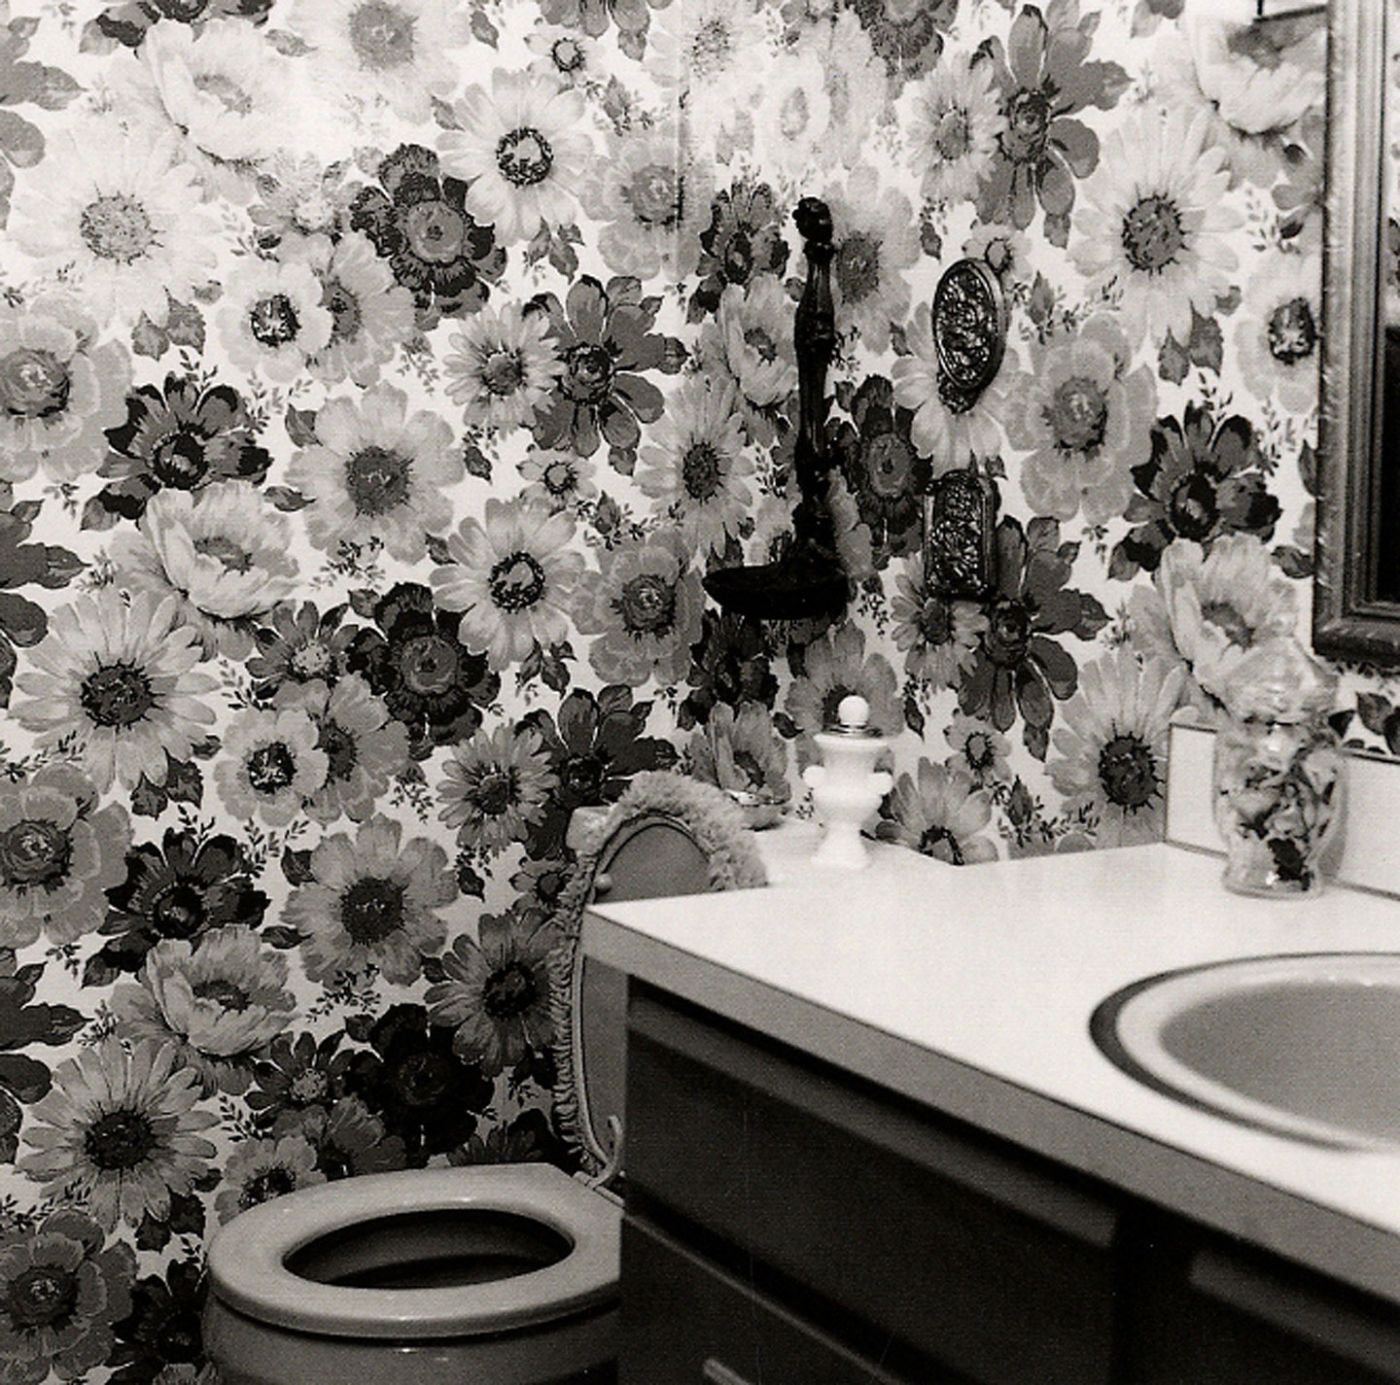 Attractive Robert Adams: Interiors 1973 1974, Limited Edition [SIGNED]